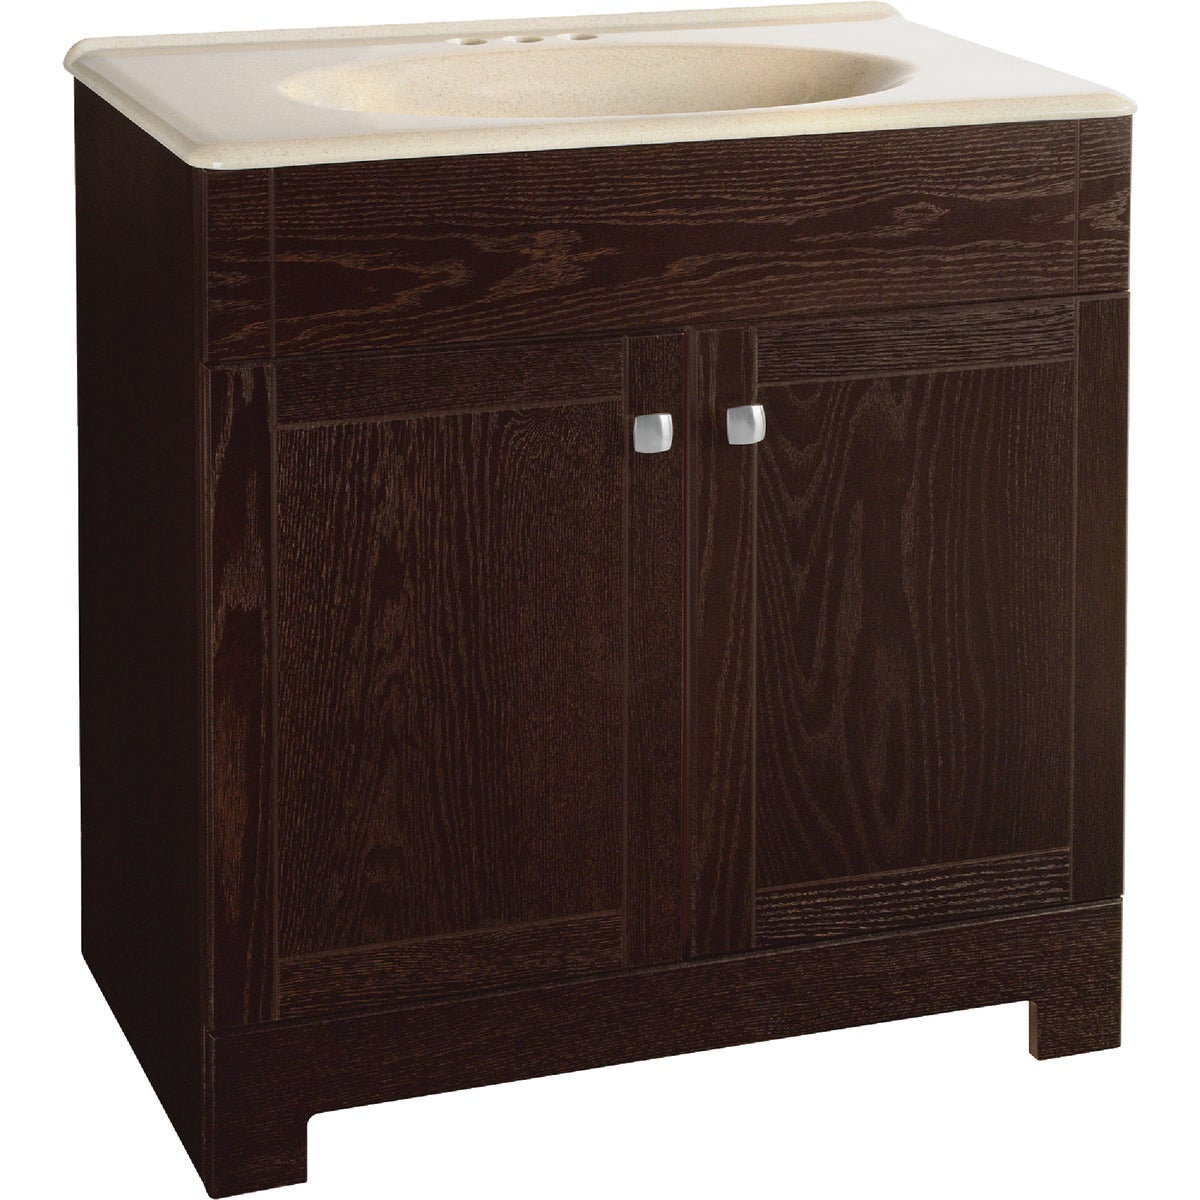 "SEDONA 30"" COMBO VANITY - CBPPFSJVO30 by RSI Home Products"